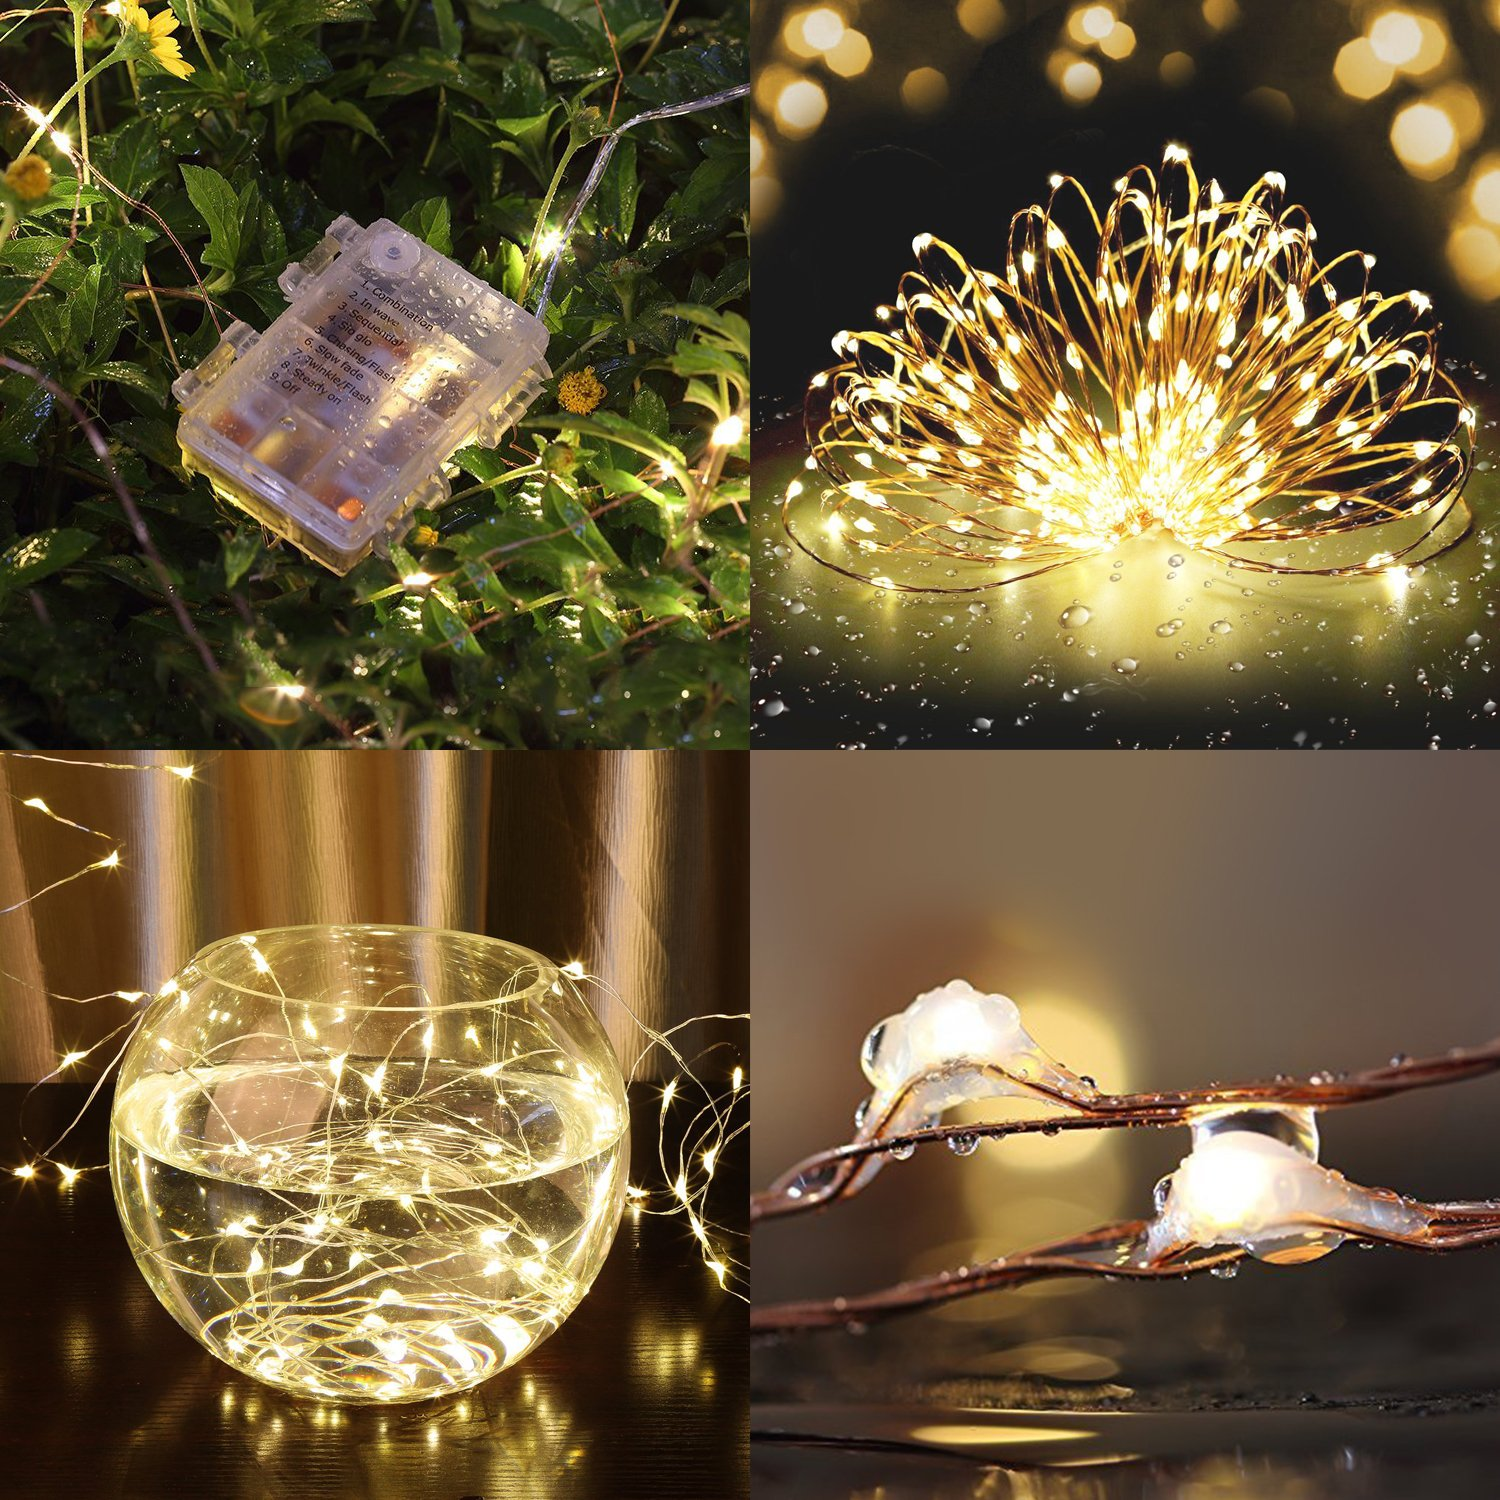 String Lights 2 Set 100 LED Christmas Fairy Lights with Remote Control(Timer),Warmtaste 33ft String Waterproof Copper Wire, Decor Rope Lights for Bedroom,Patio,Garden,Parties,Wedding(Warm White ) by Warmtaste (Image #4)